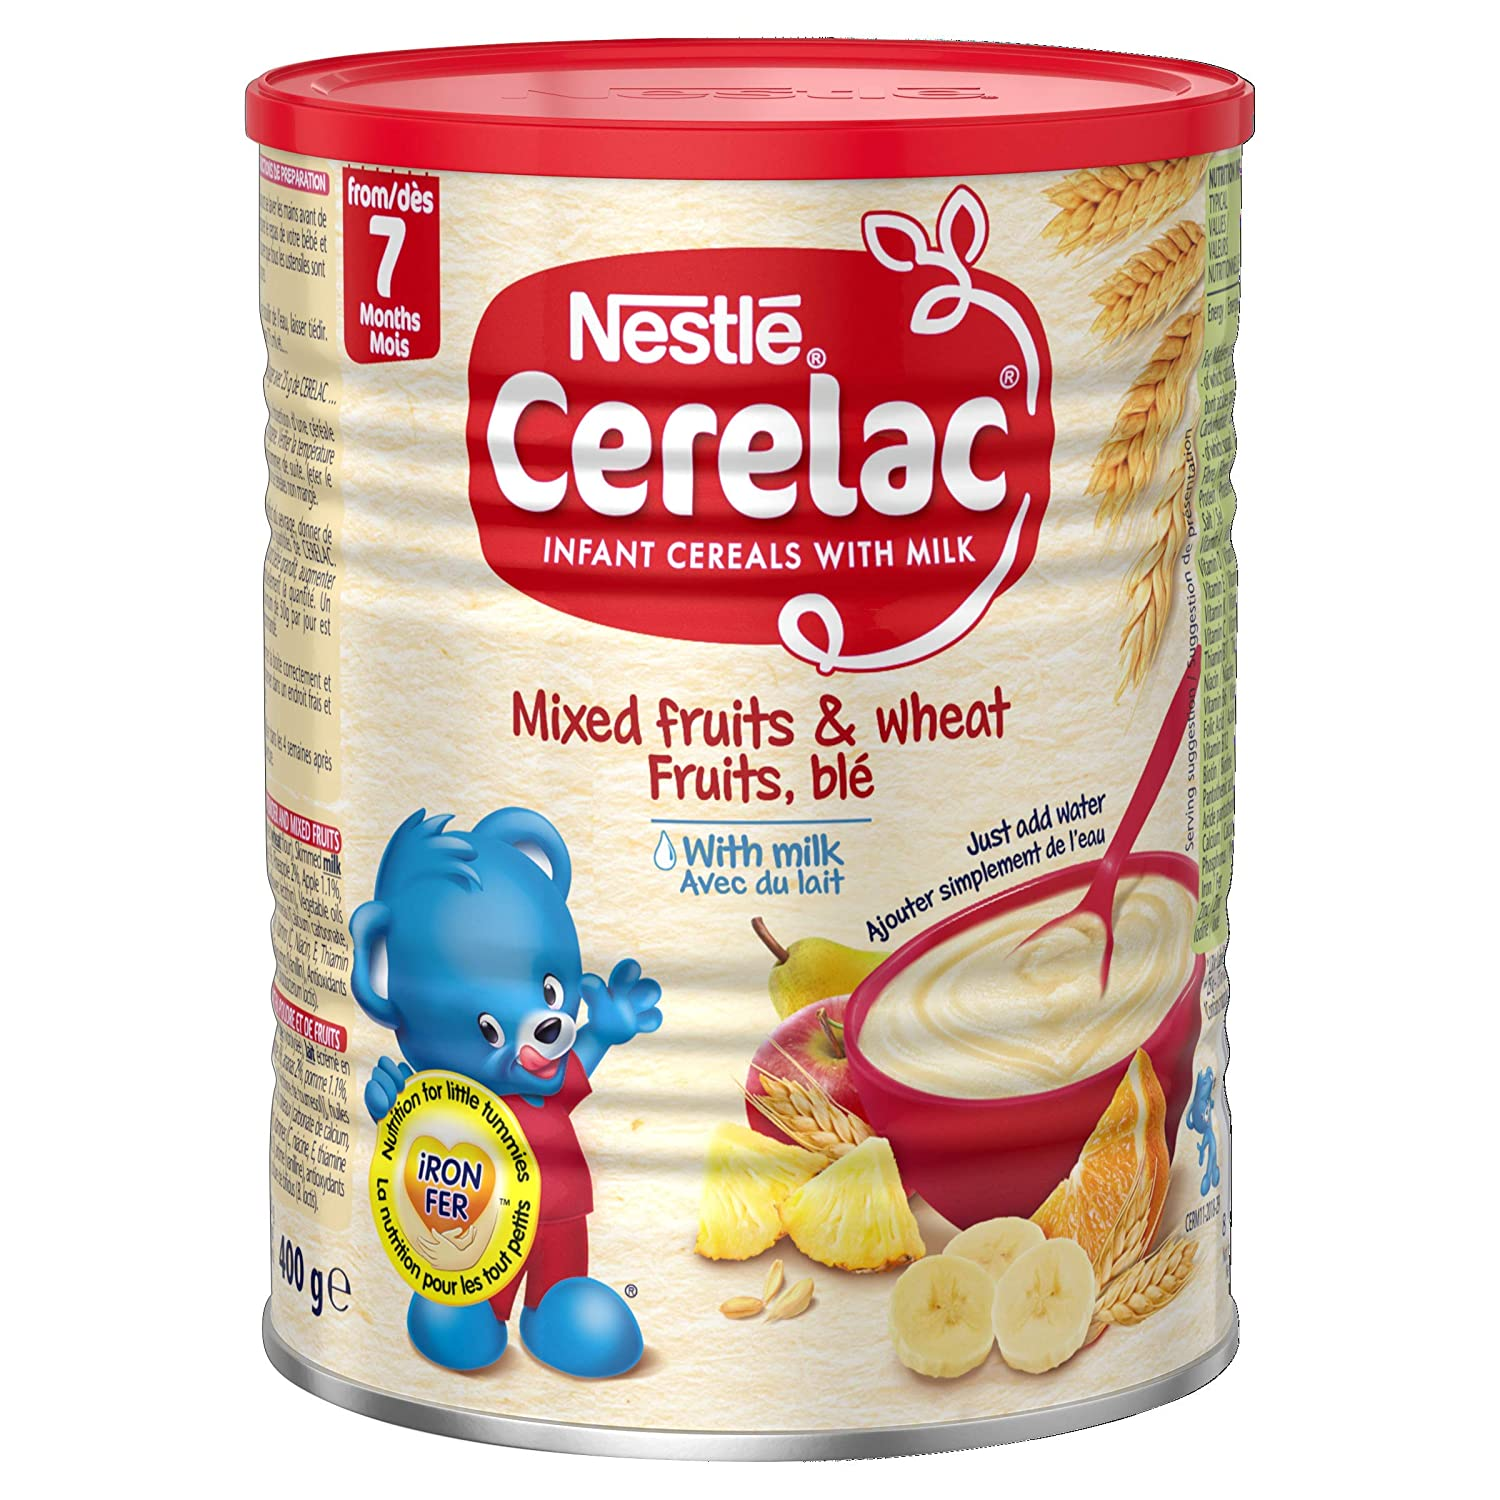 Nestle Cerelac Mixed Fruits Wheat Ounce 14.1 with Cans Max 84% Free Shipping New OFF Milk